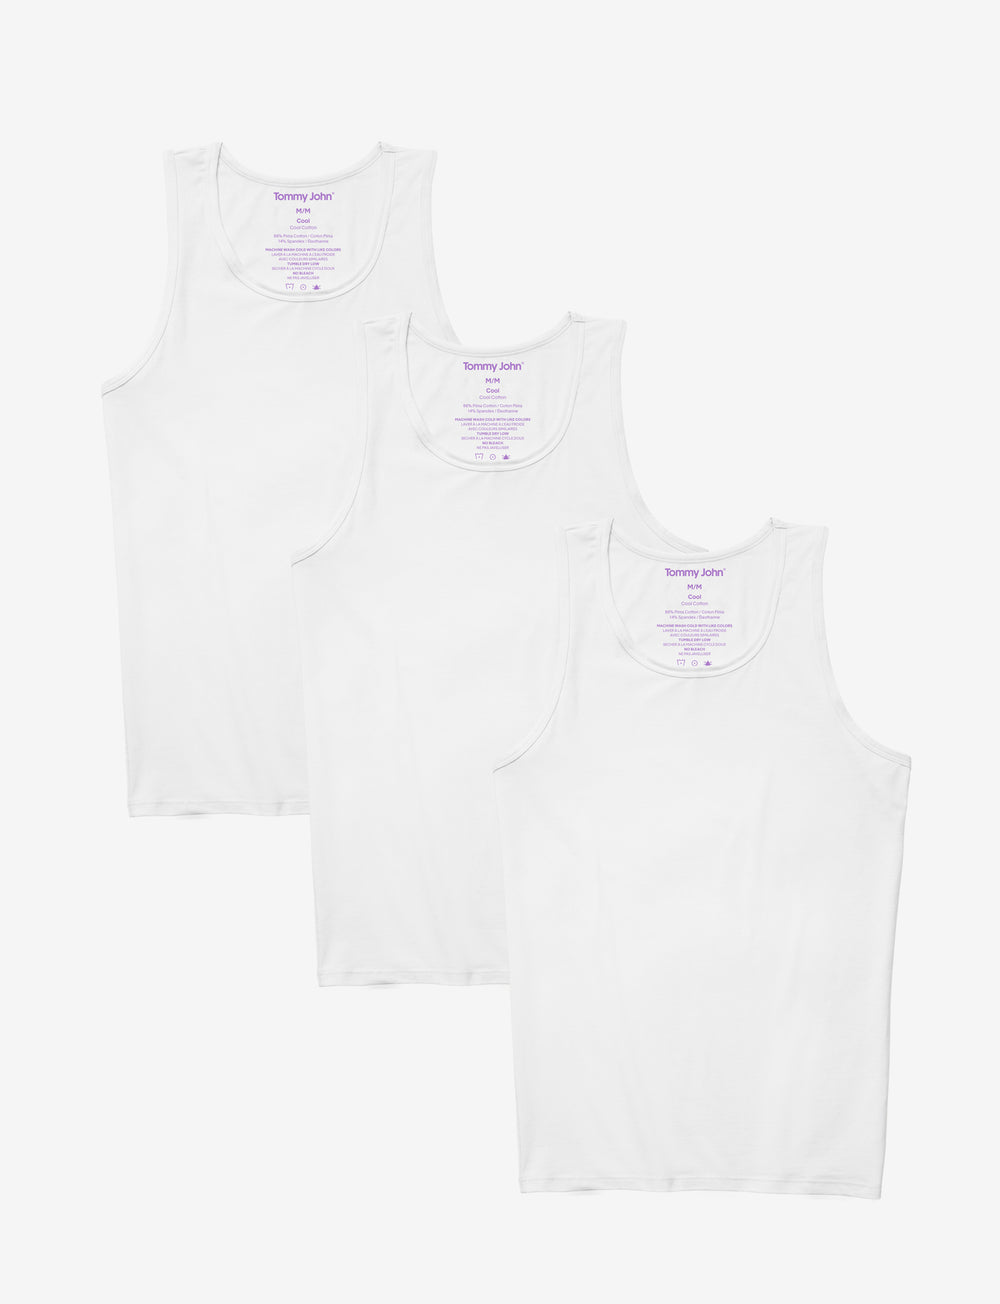 Cool Cotton Tank 2.0 3 Pack Details Image